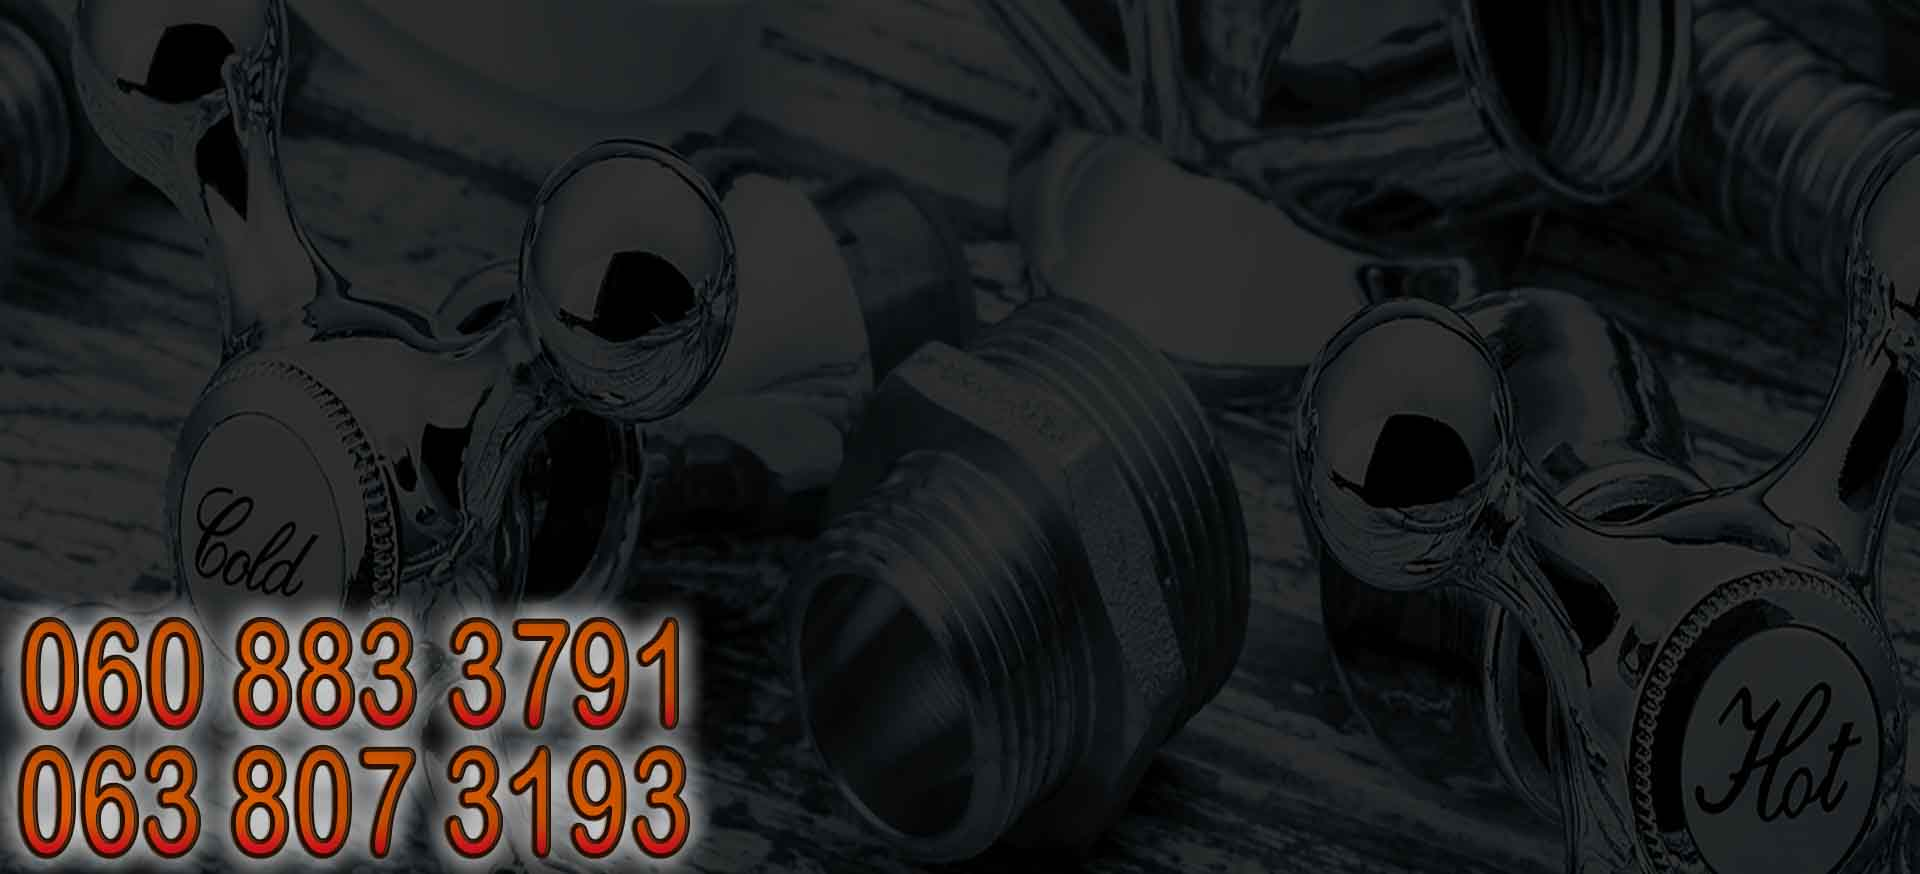 Header for 24/7 all hour Benoni East Plumbers in East Rand.